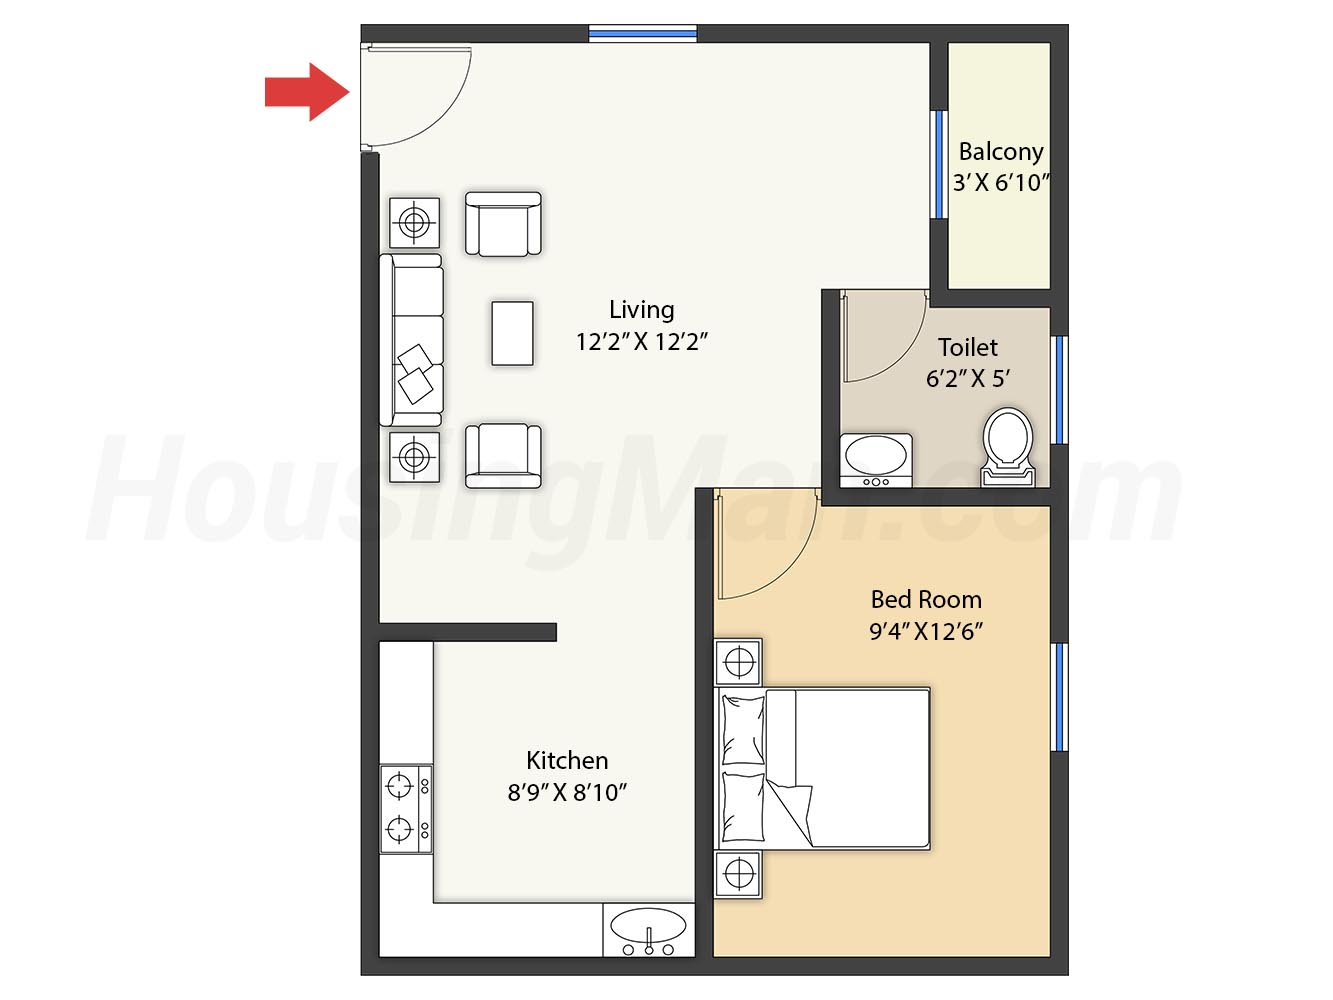 1bhk 1t 679 t